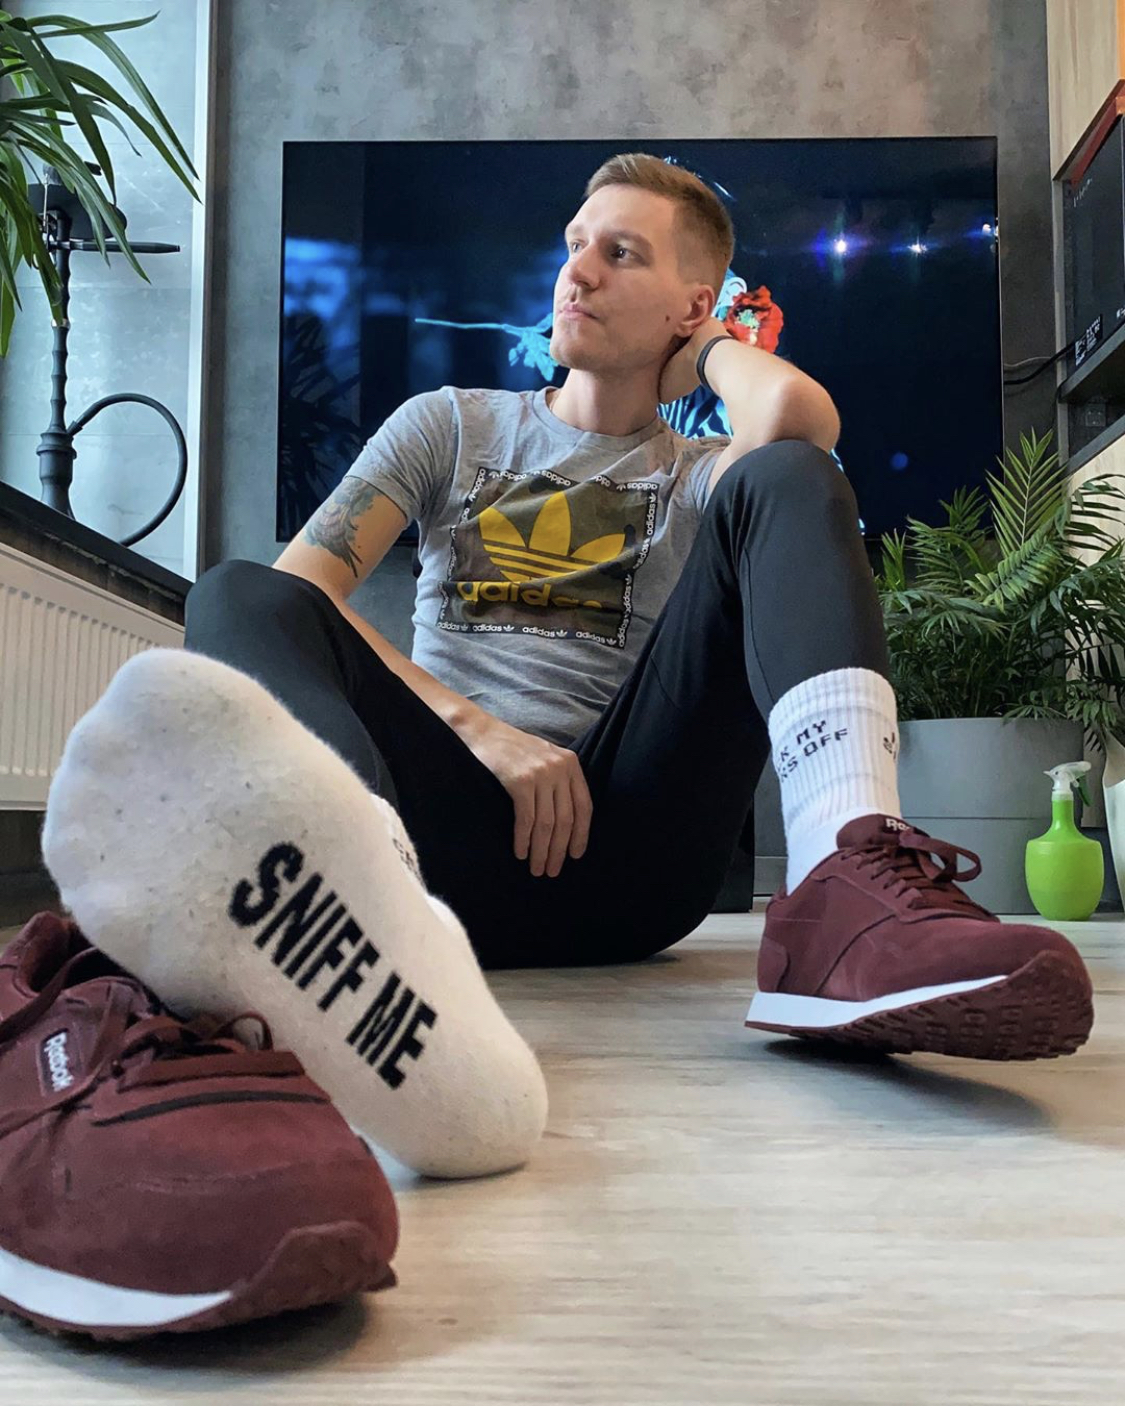 Stripsport shows off his white crew socks and Reebok